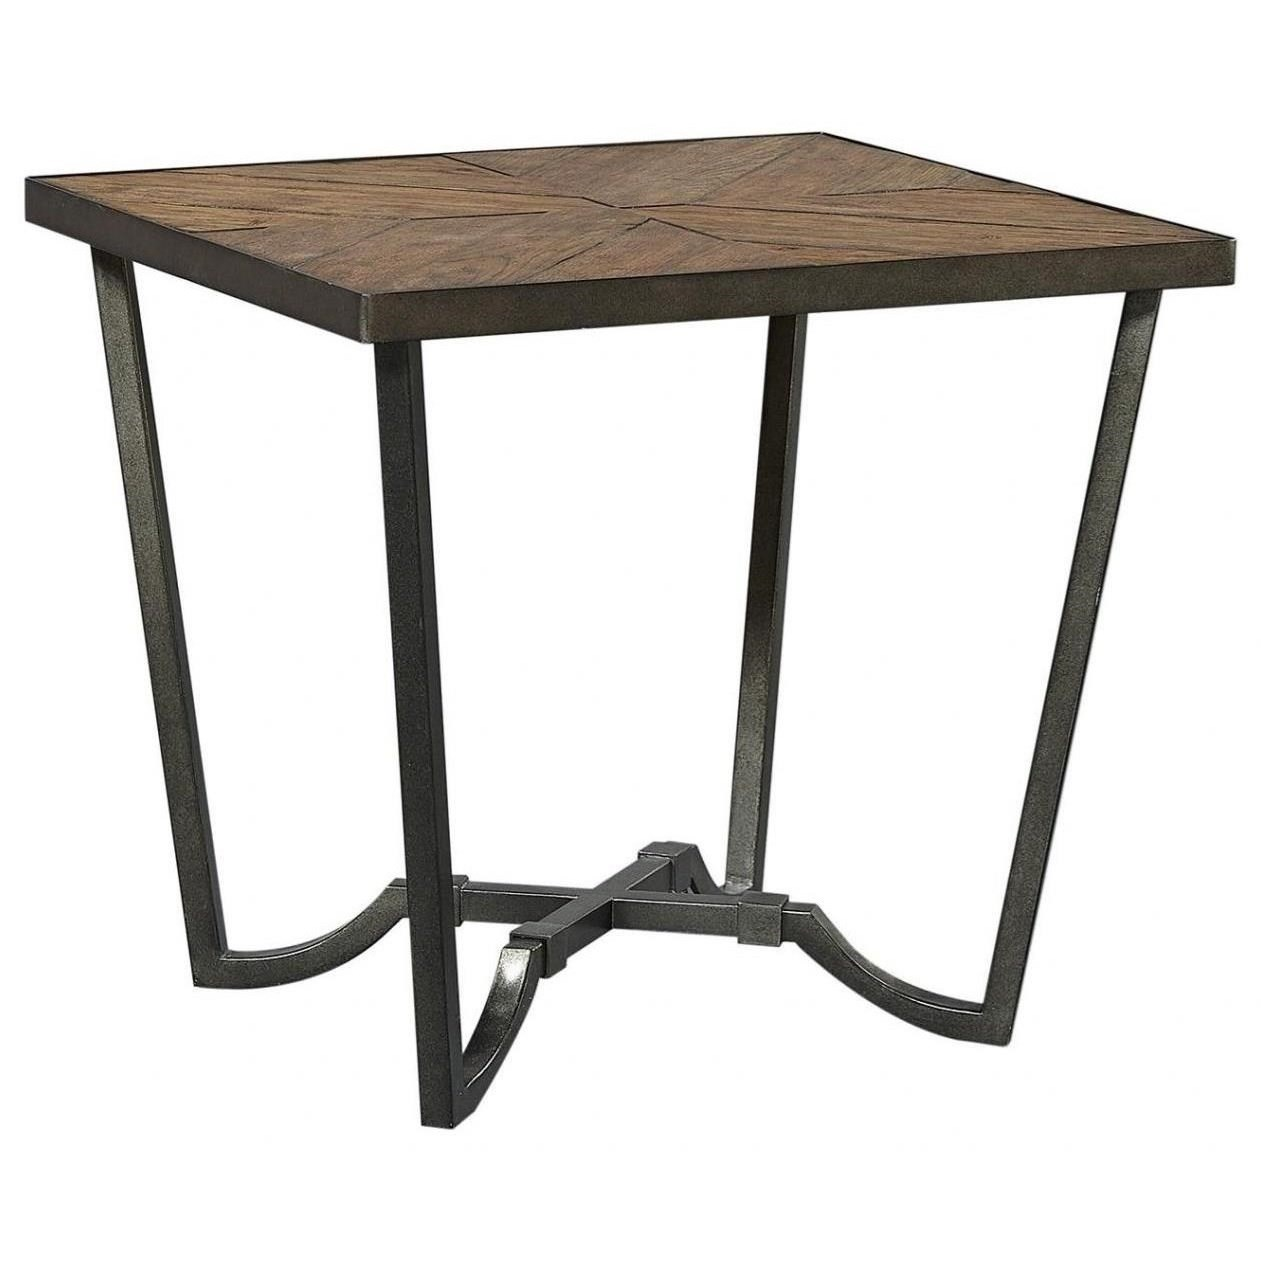 Mosaic End Table with Wood Top by Aspenhome at Stoney Creek Furniture